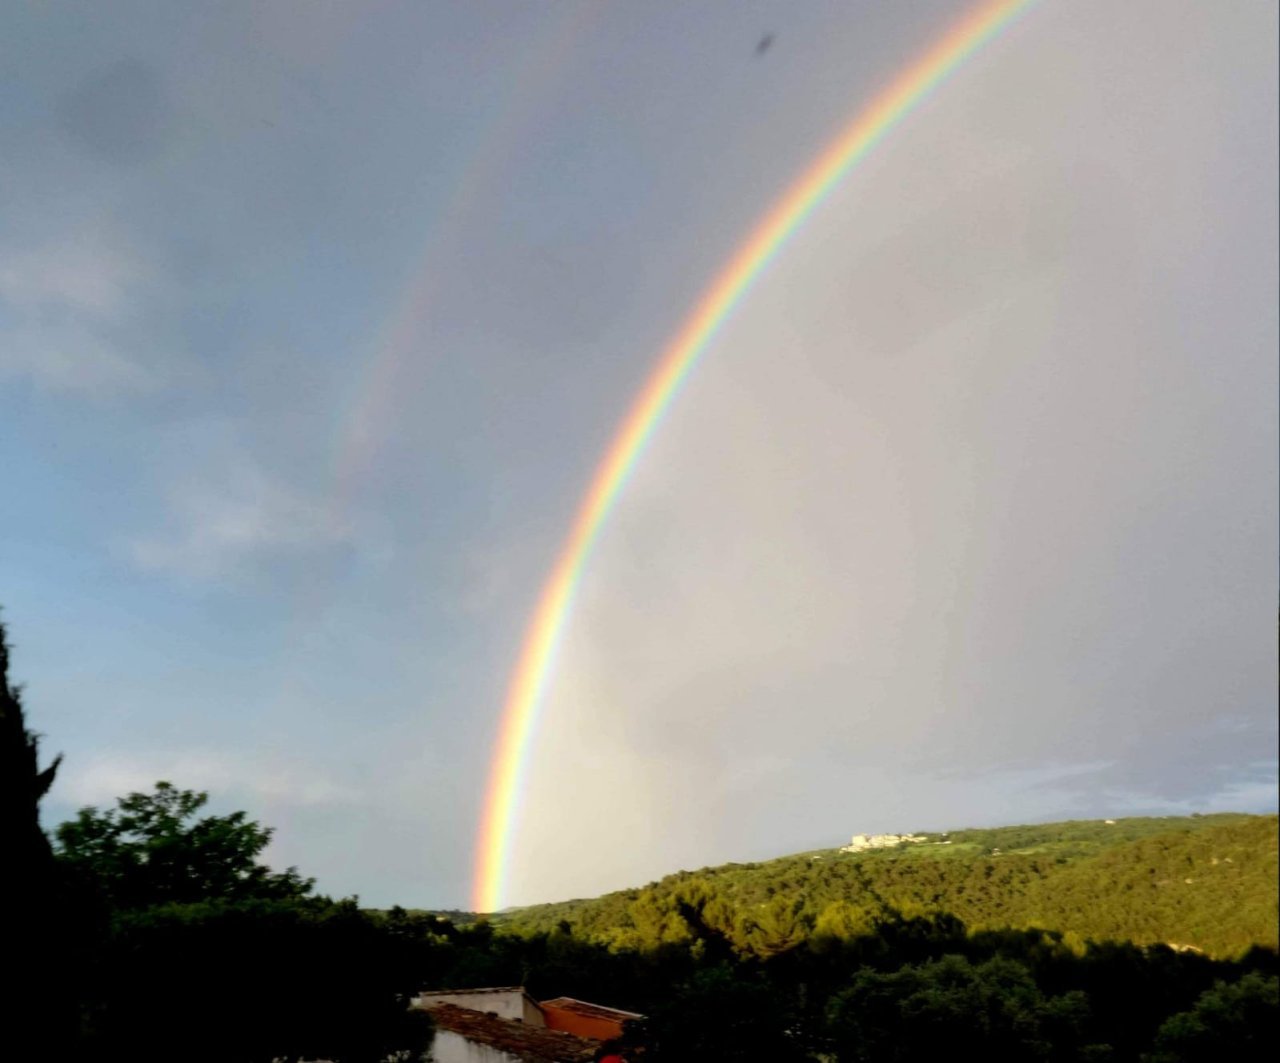 The Pot of Gold at the end of TheRainbow